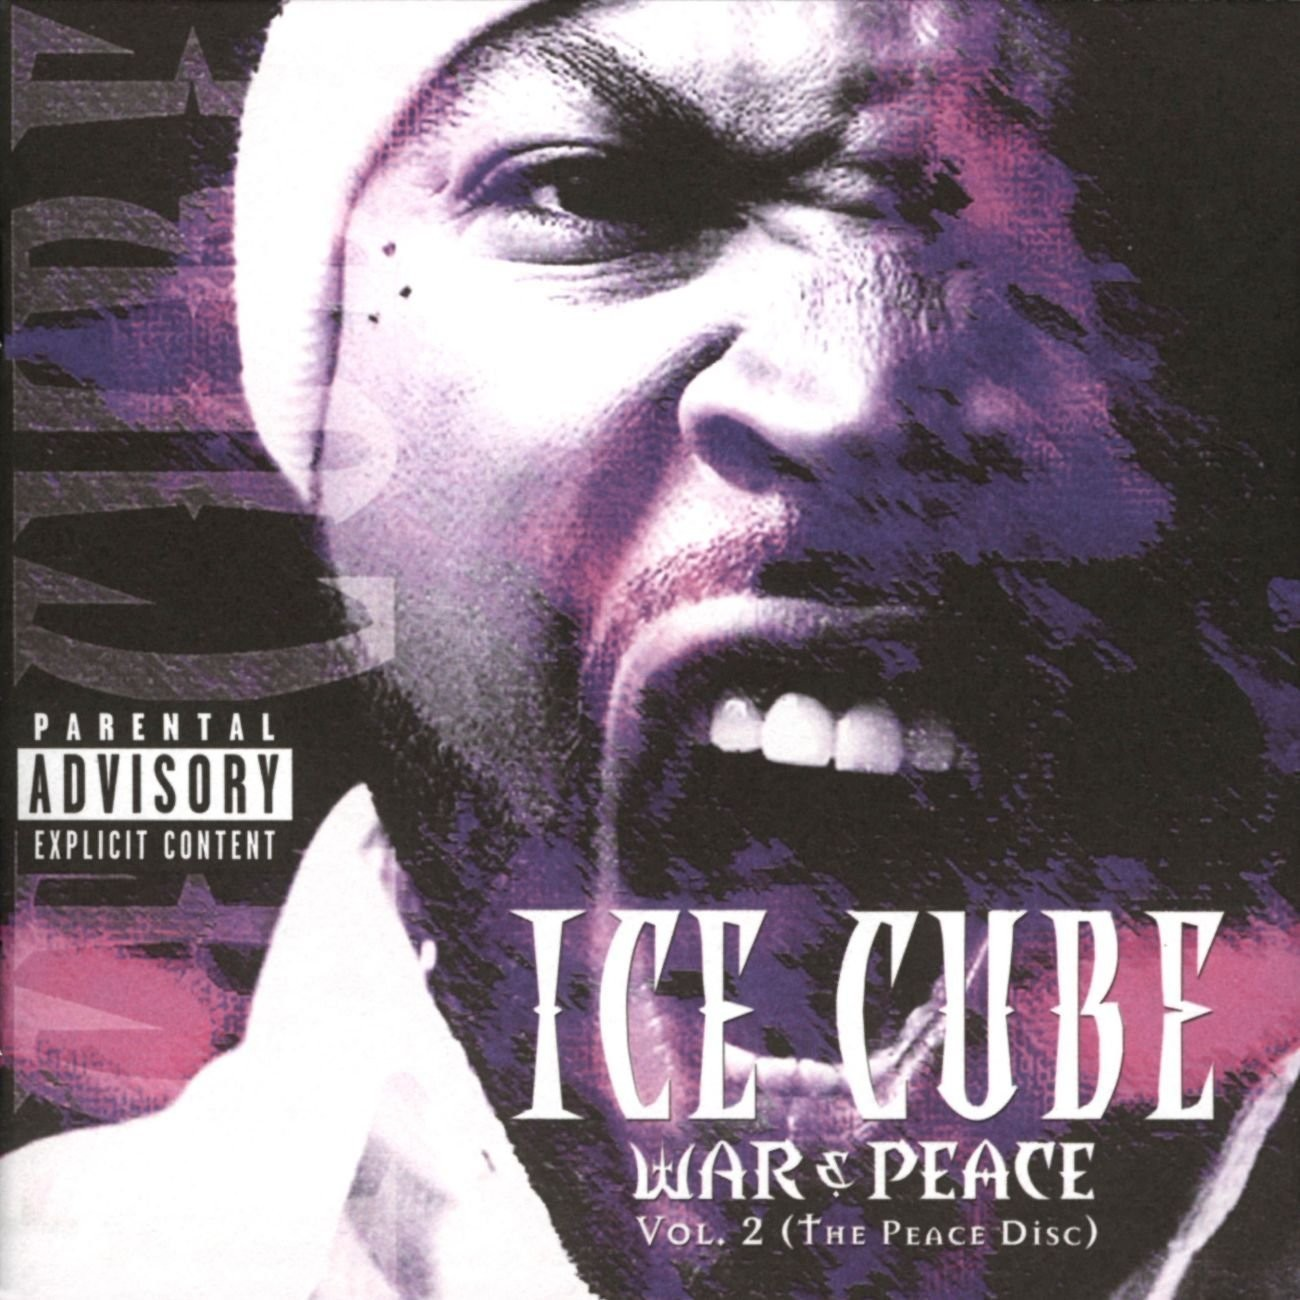 Ice Cube - War and Peace Vol. 2 (The Peace Disc)